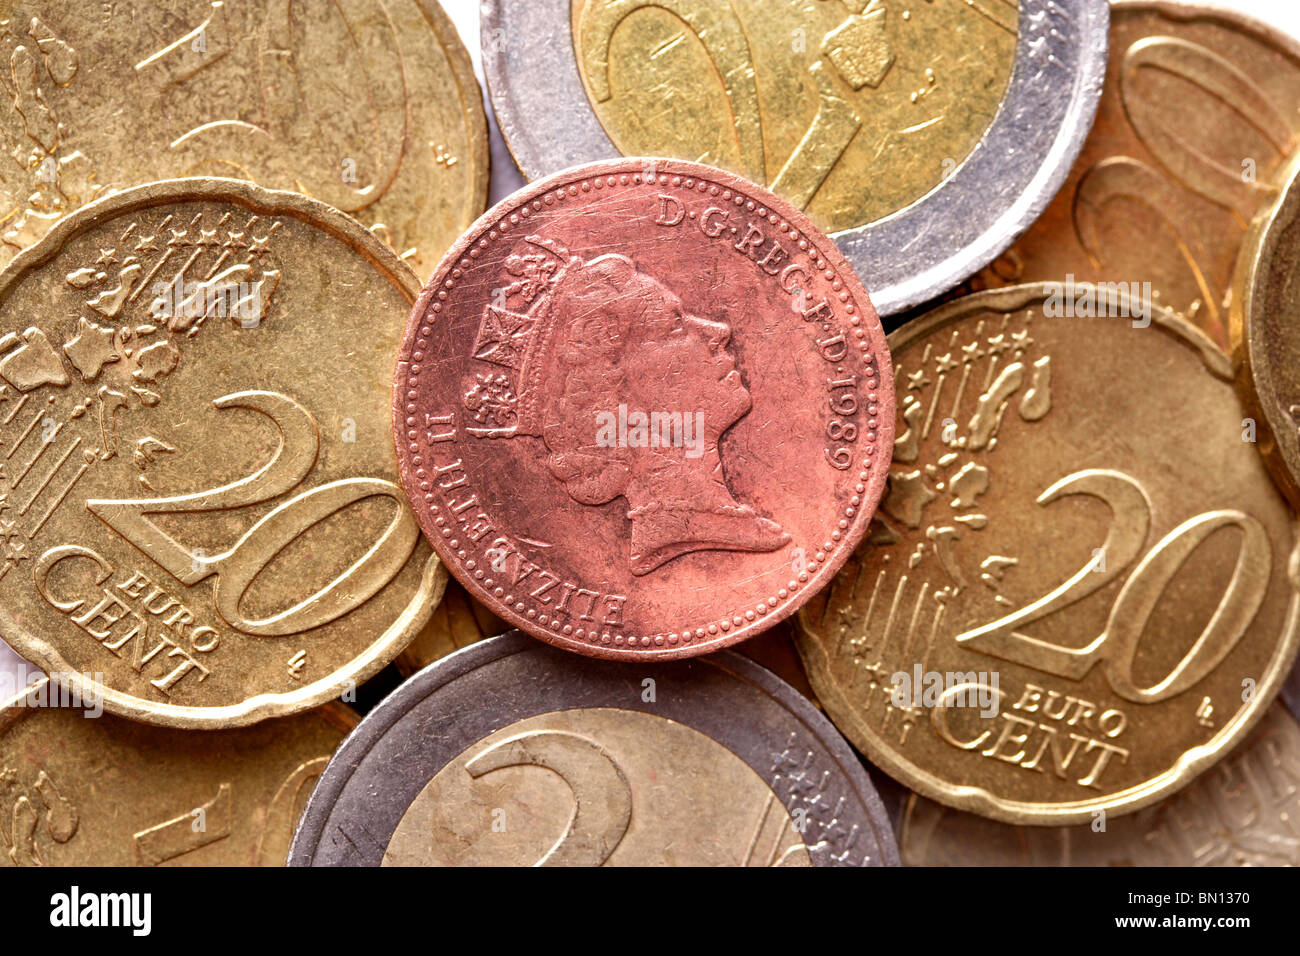 Euro coins for backgrounds - Stock Image